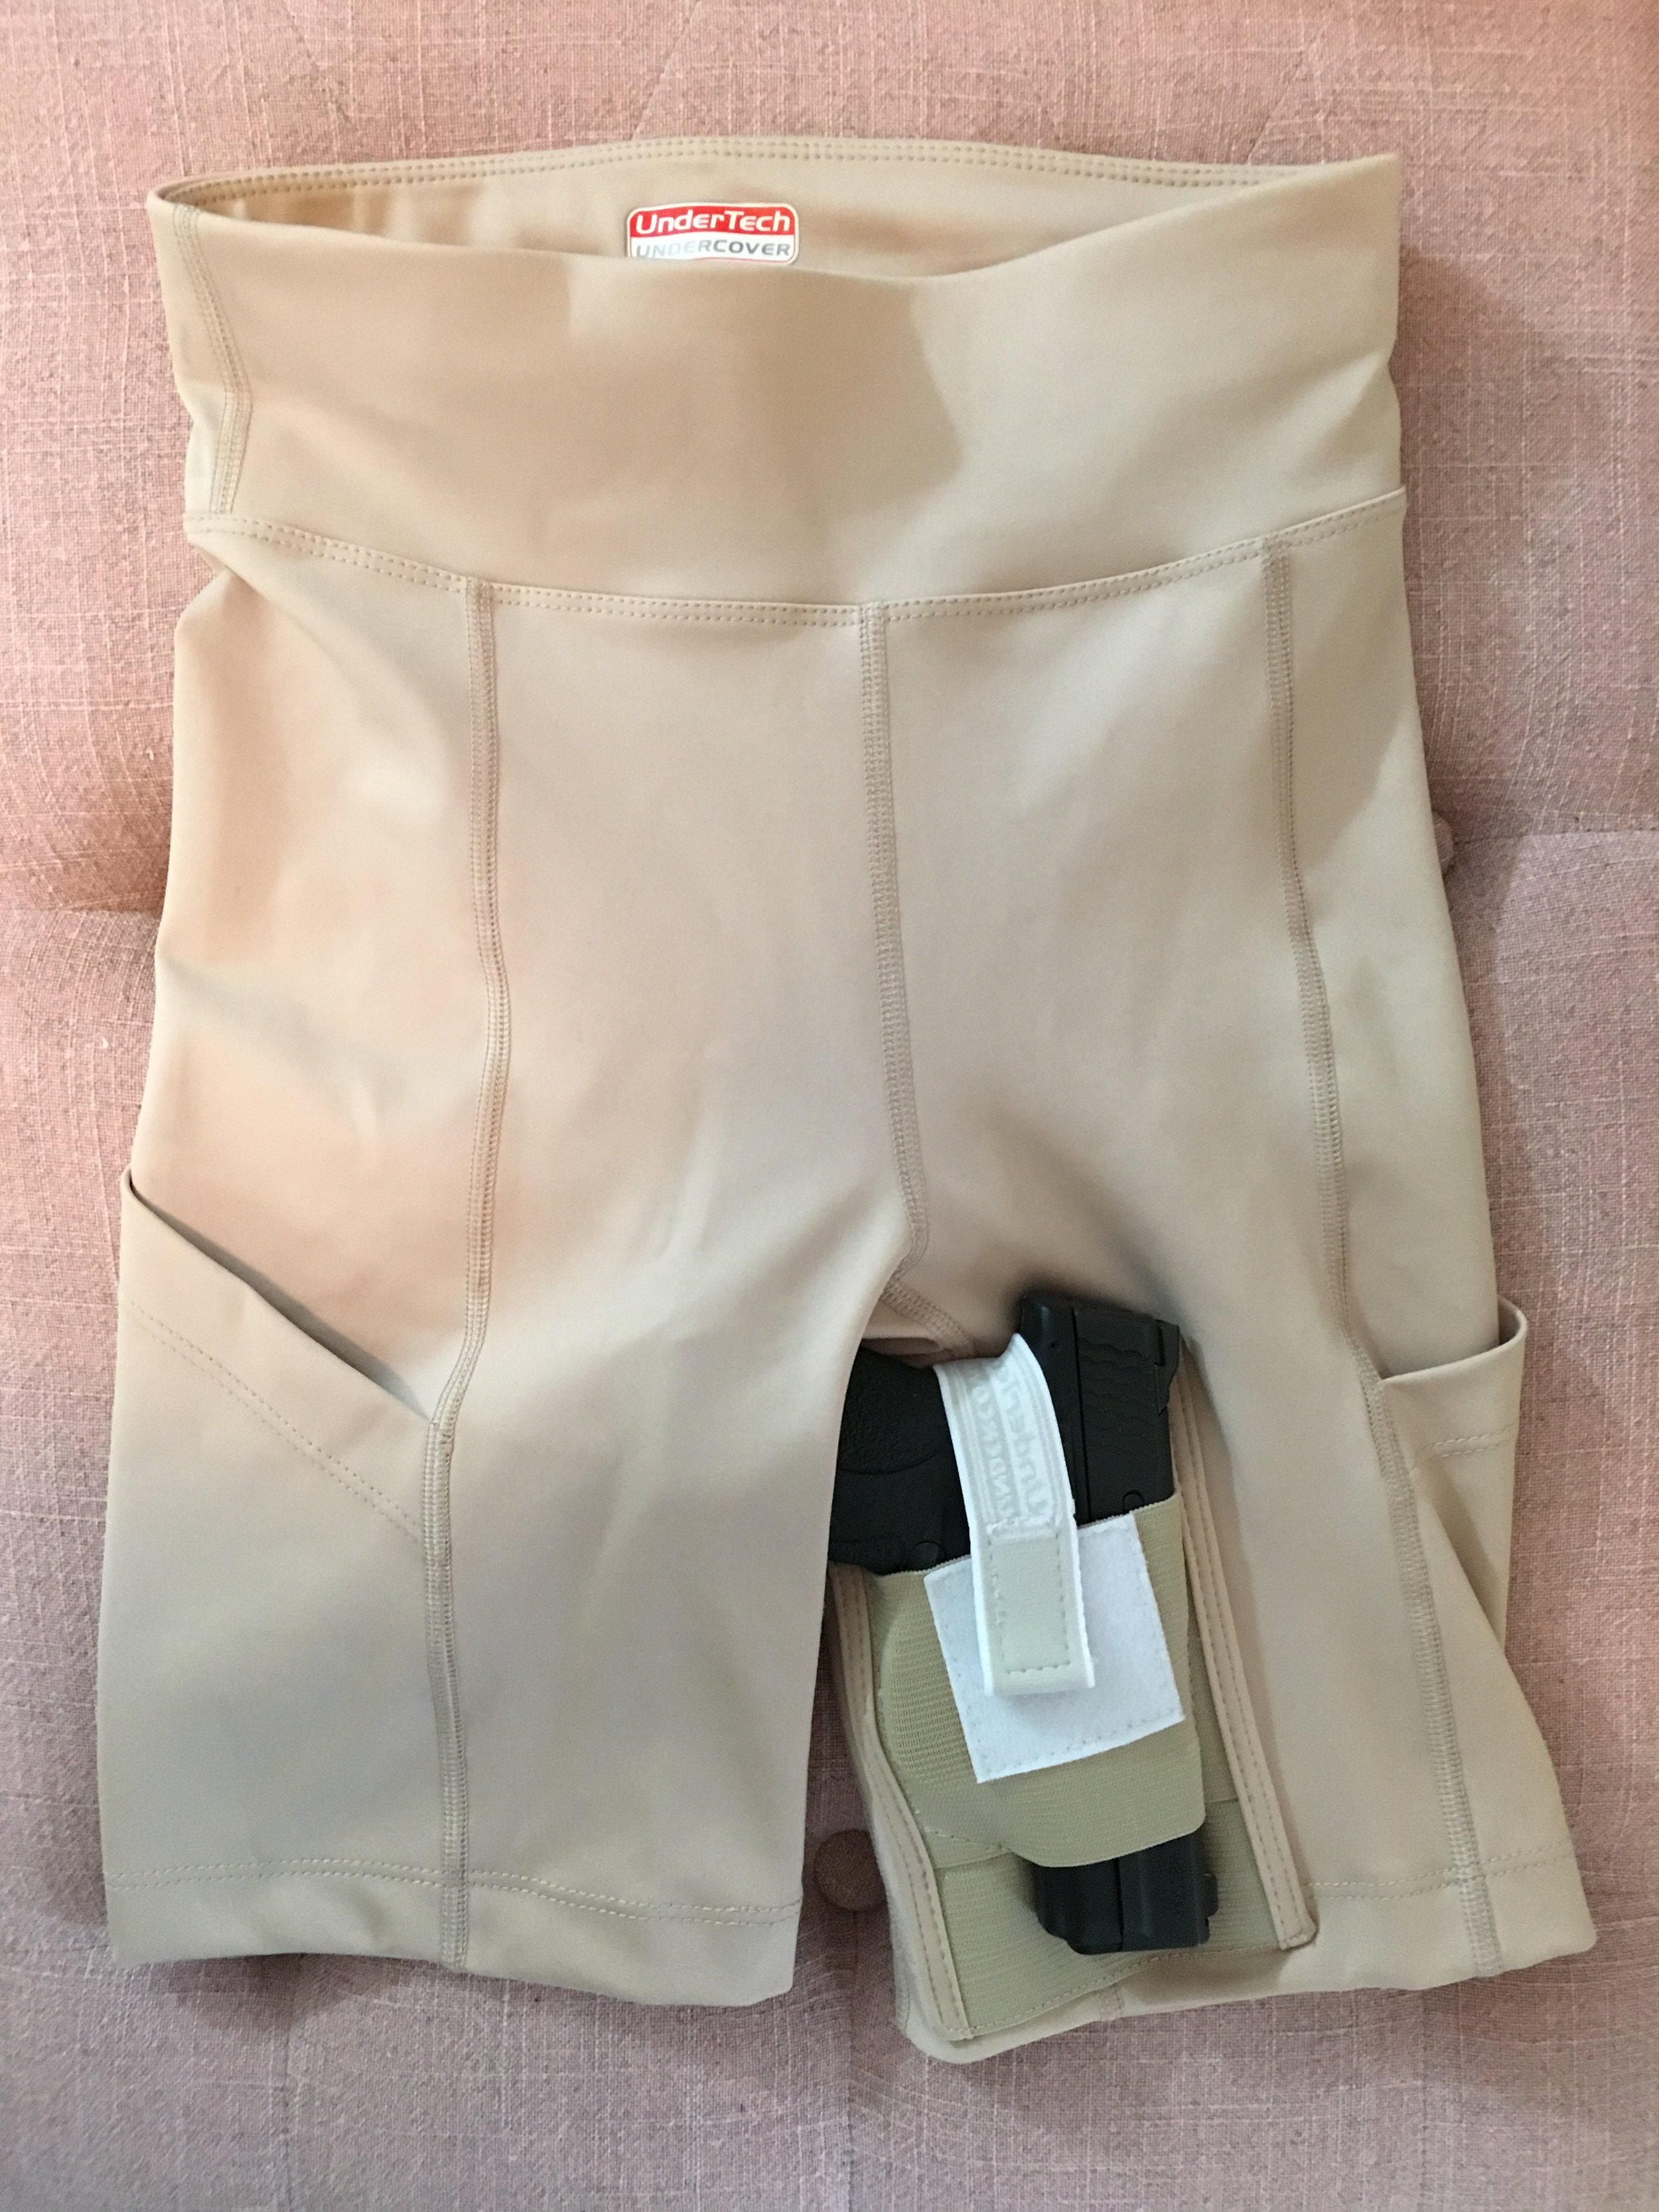 Undertec Undercover Thigh Holster     Use code: Elegant10 for 10% off